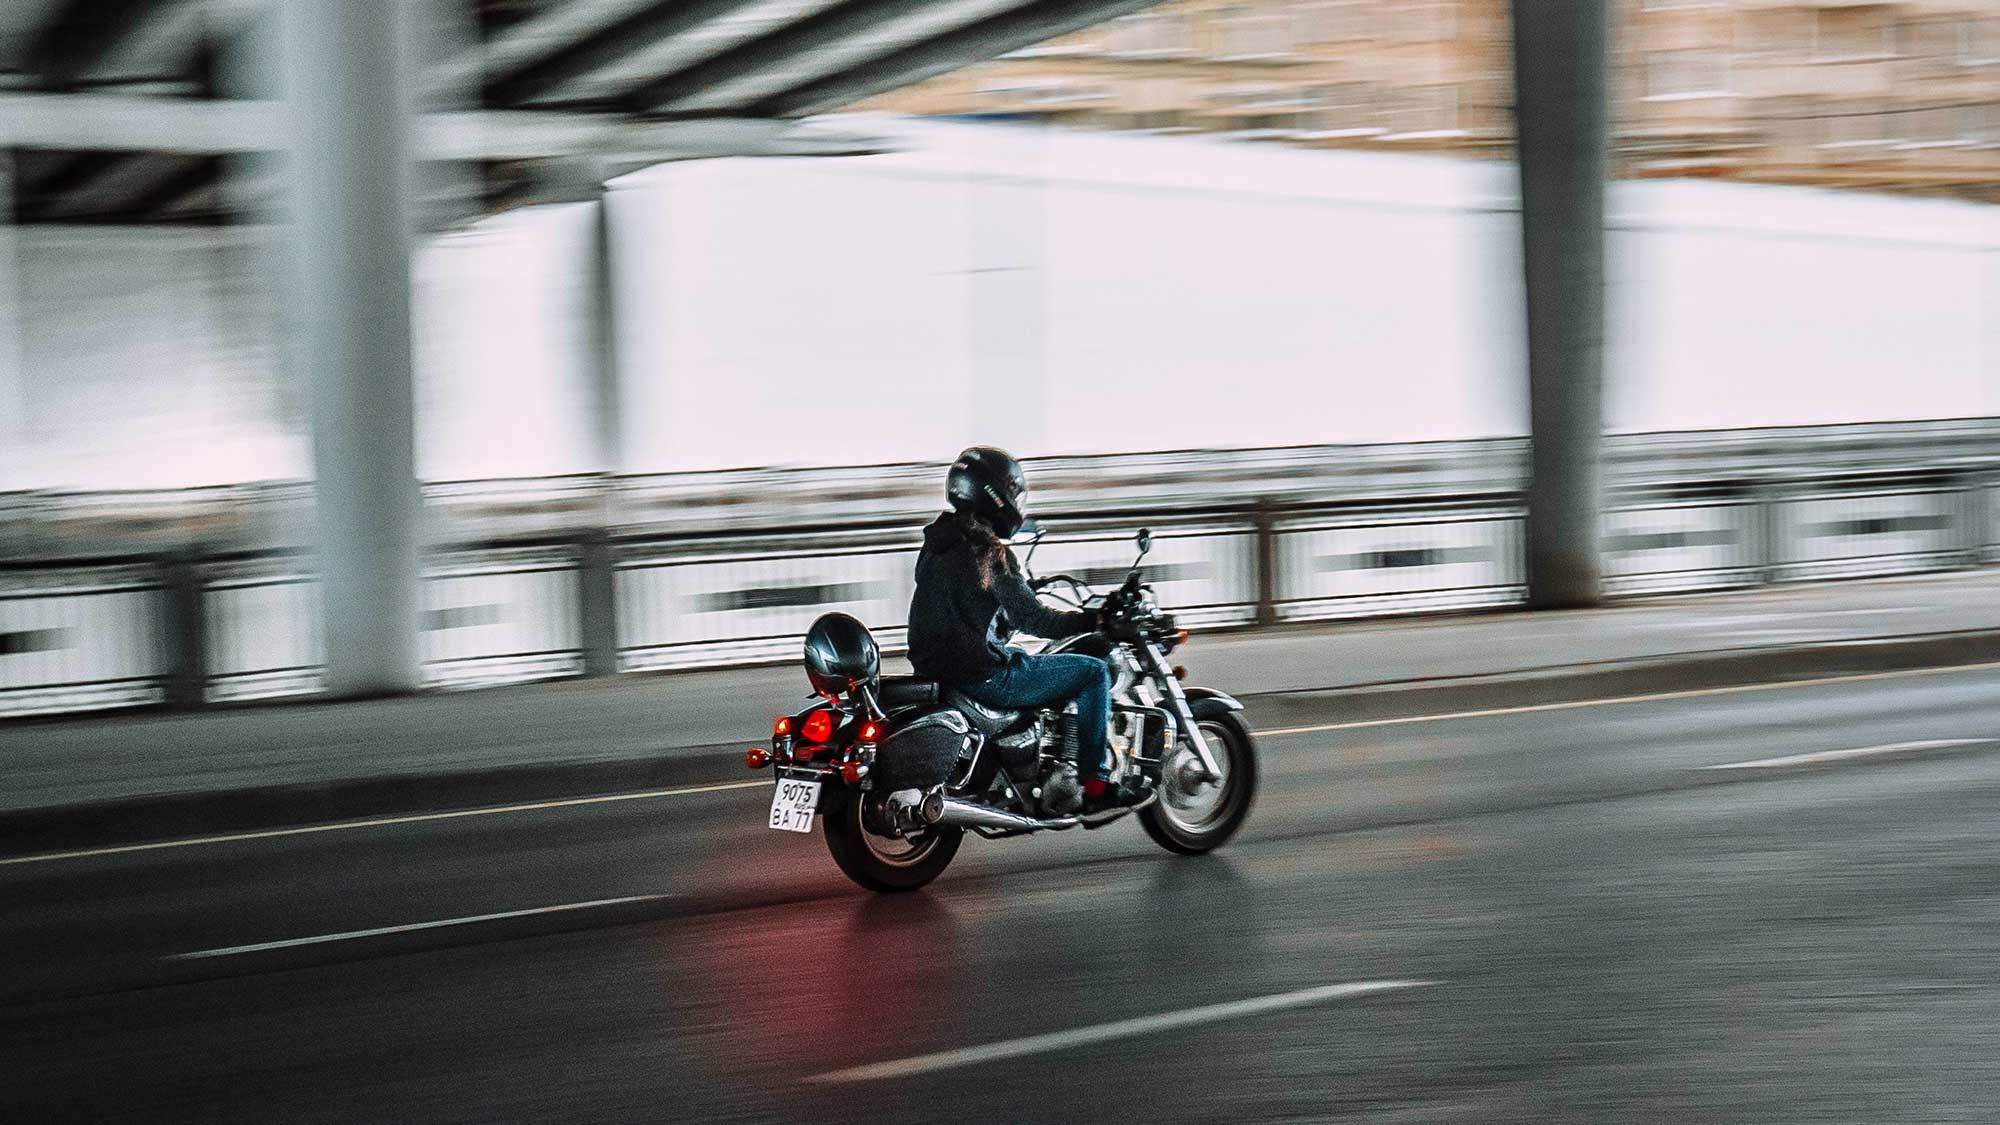 Protect Yourself On The Roads As A Motorcyclist